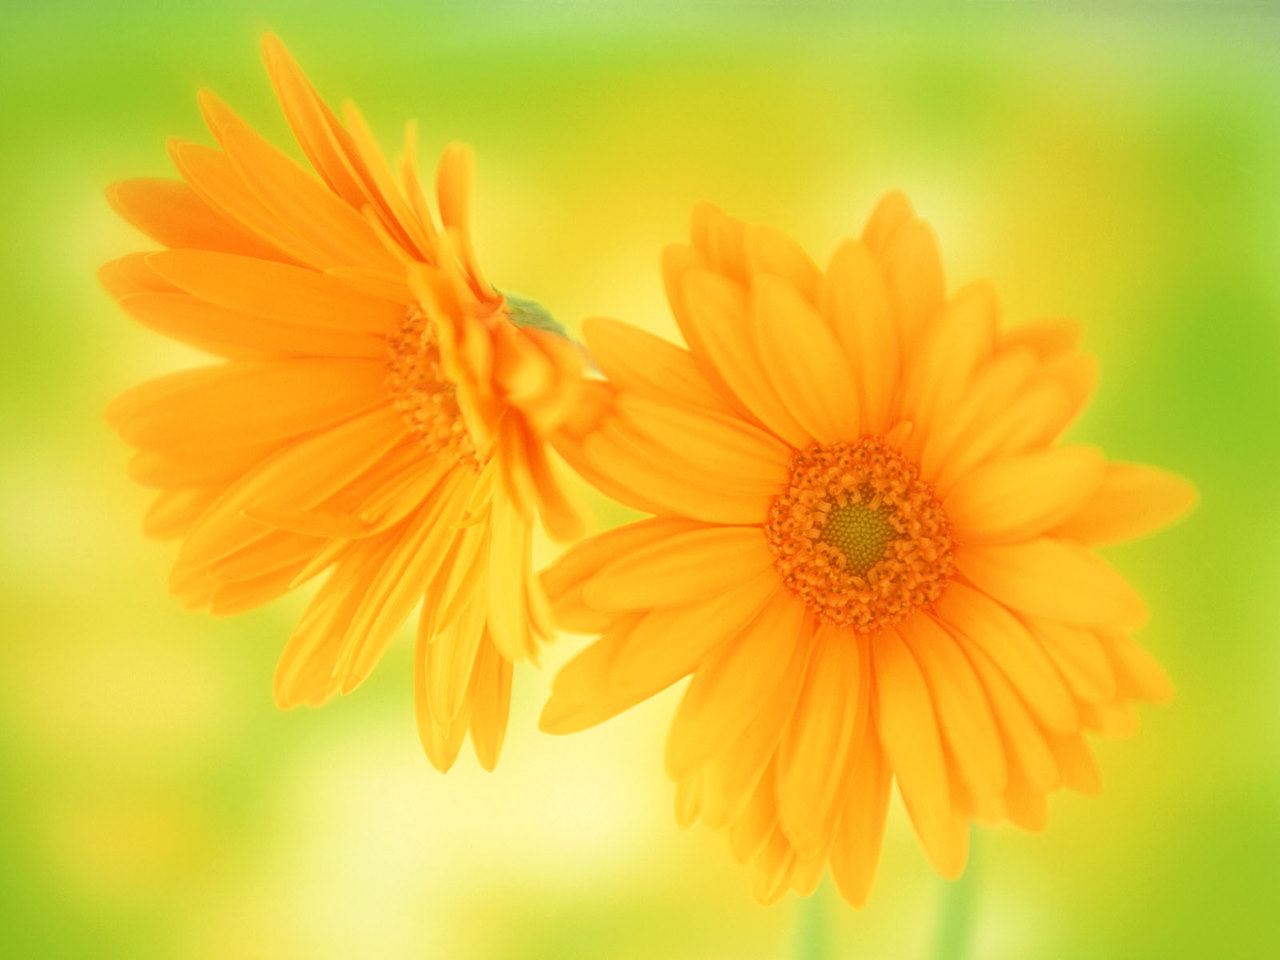 http://4.bp.blogspot.com/_uTGKd6u5pJ4/TRlPYobWH0I/AAAAAAAAAPM/a55x4HYDLKk/s1600/Yellow-Daisy-Beautiful-Flowers-Wallpaper.jpg